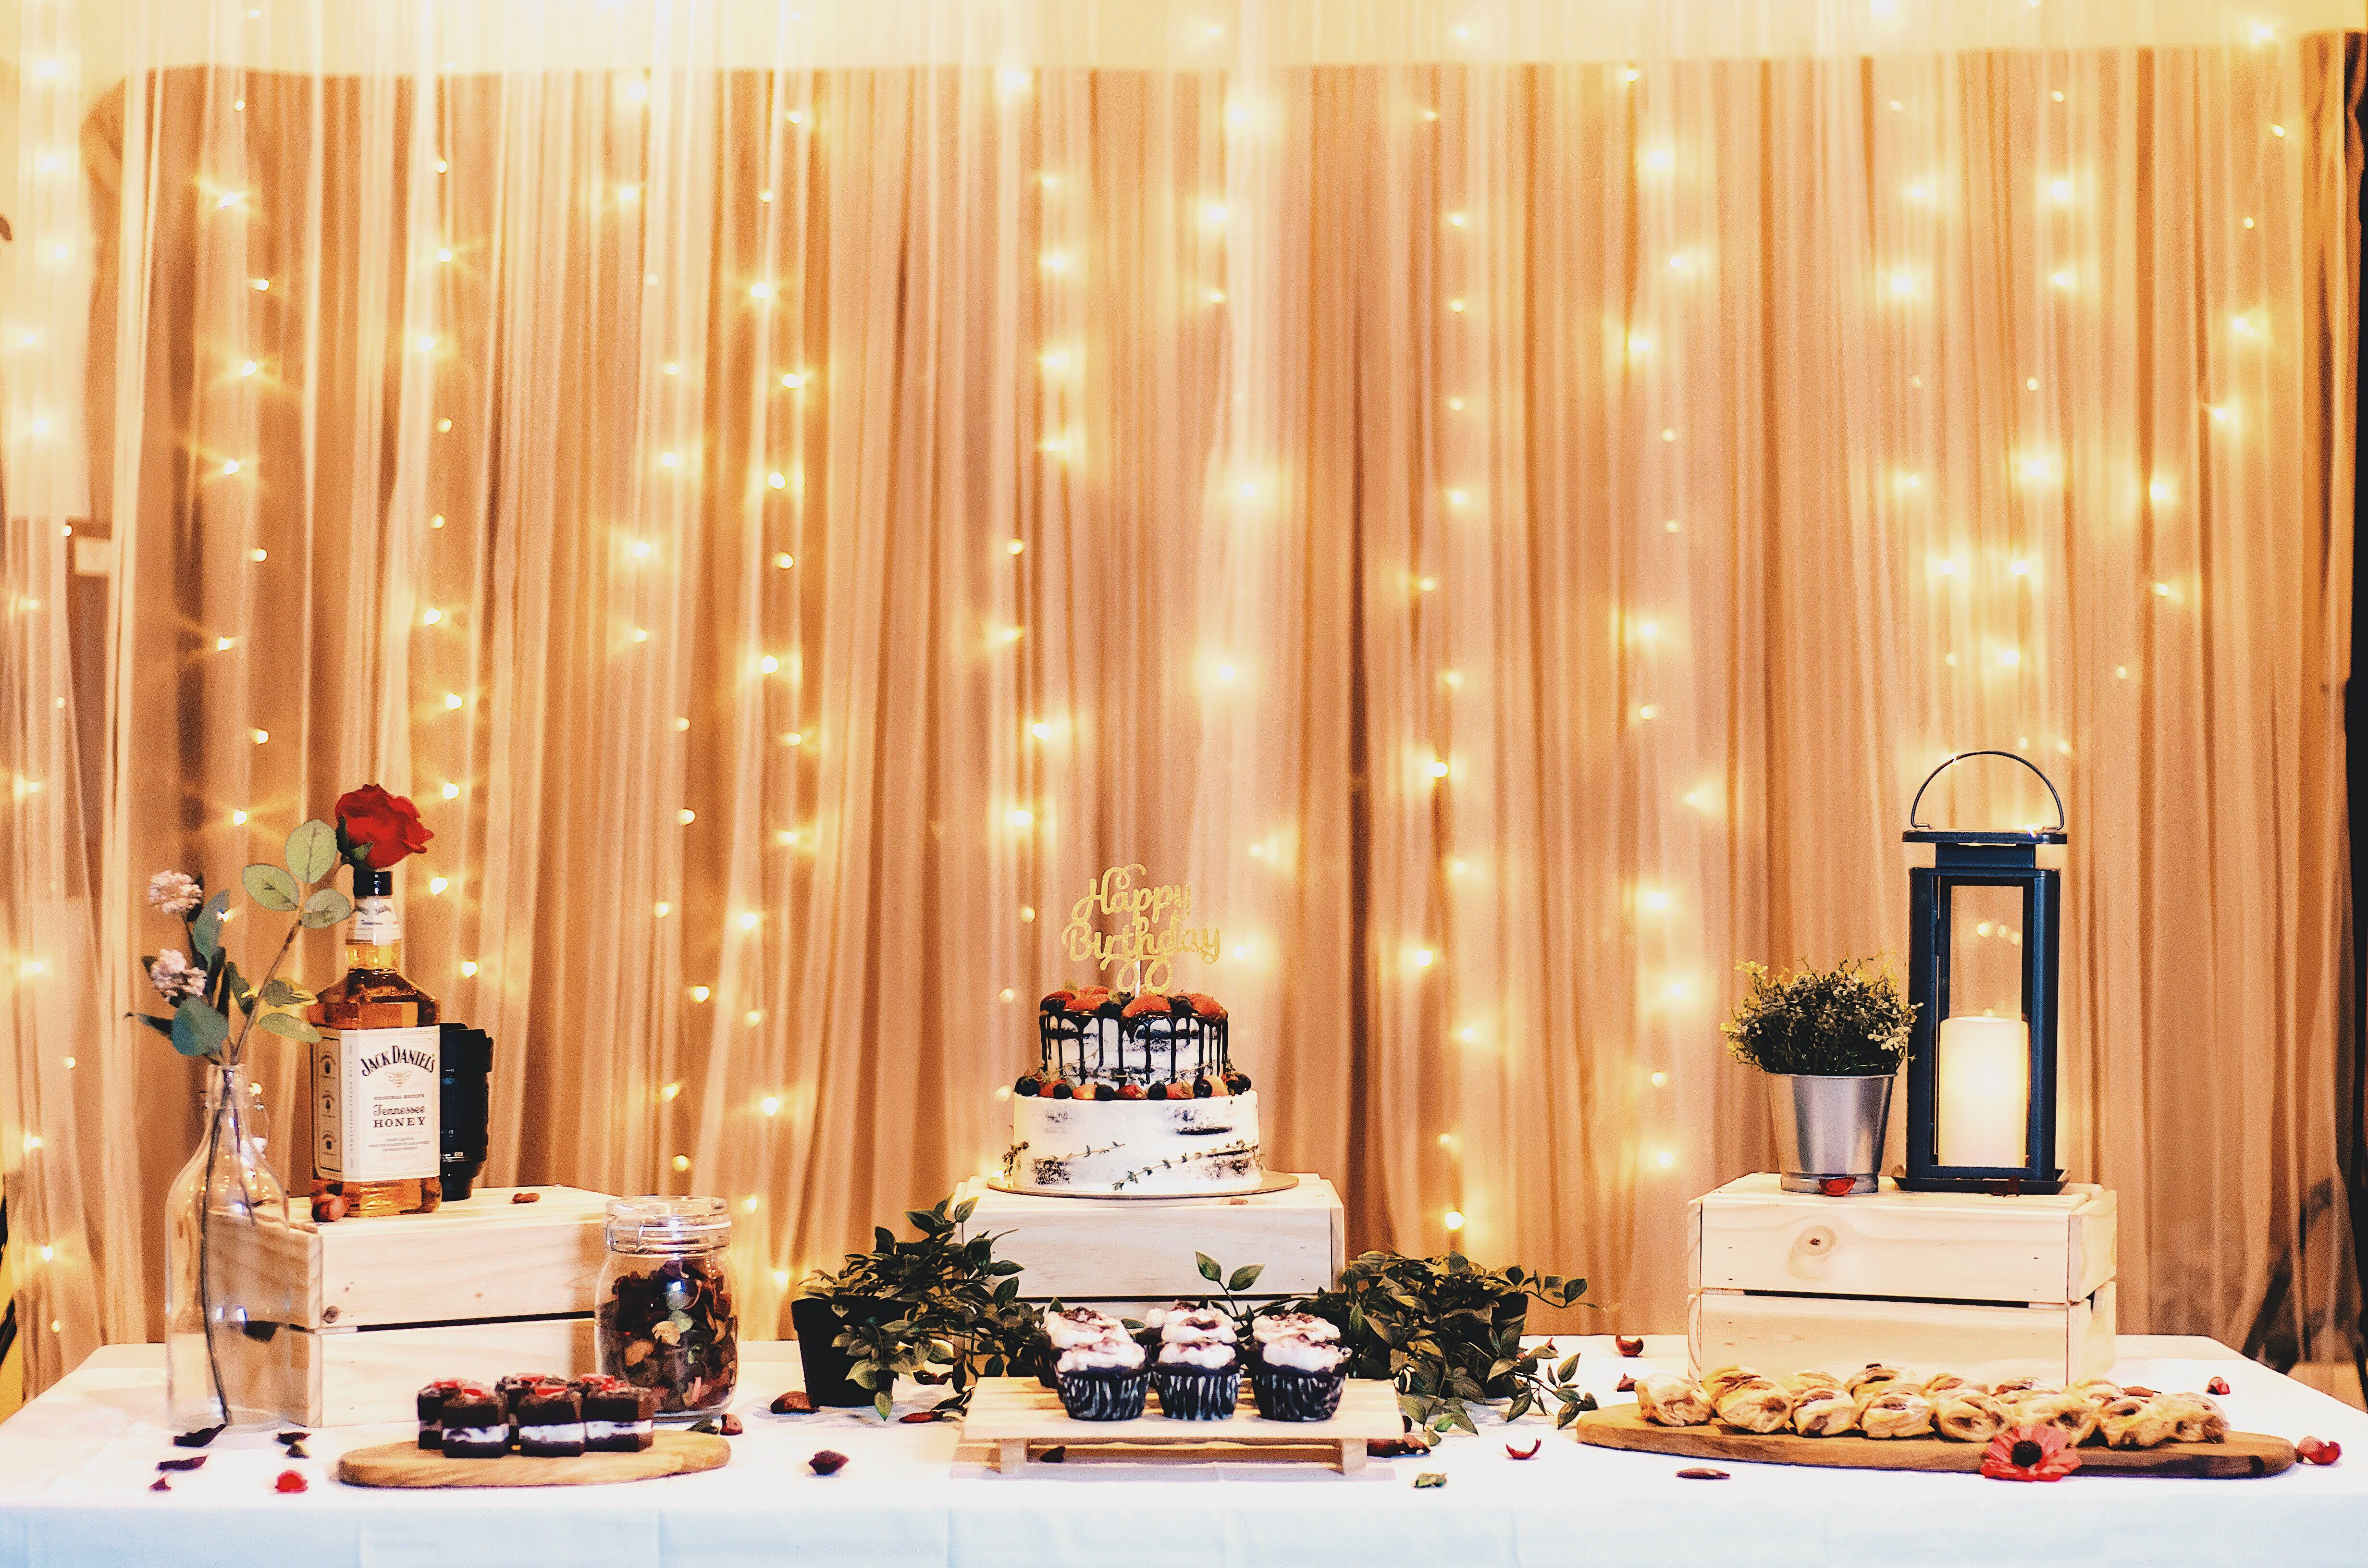 Birthday Table Decorations Rent Furniture Others On